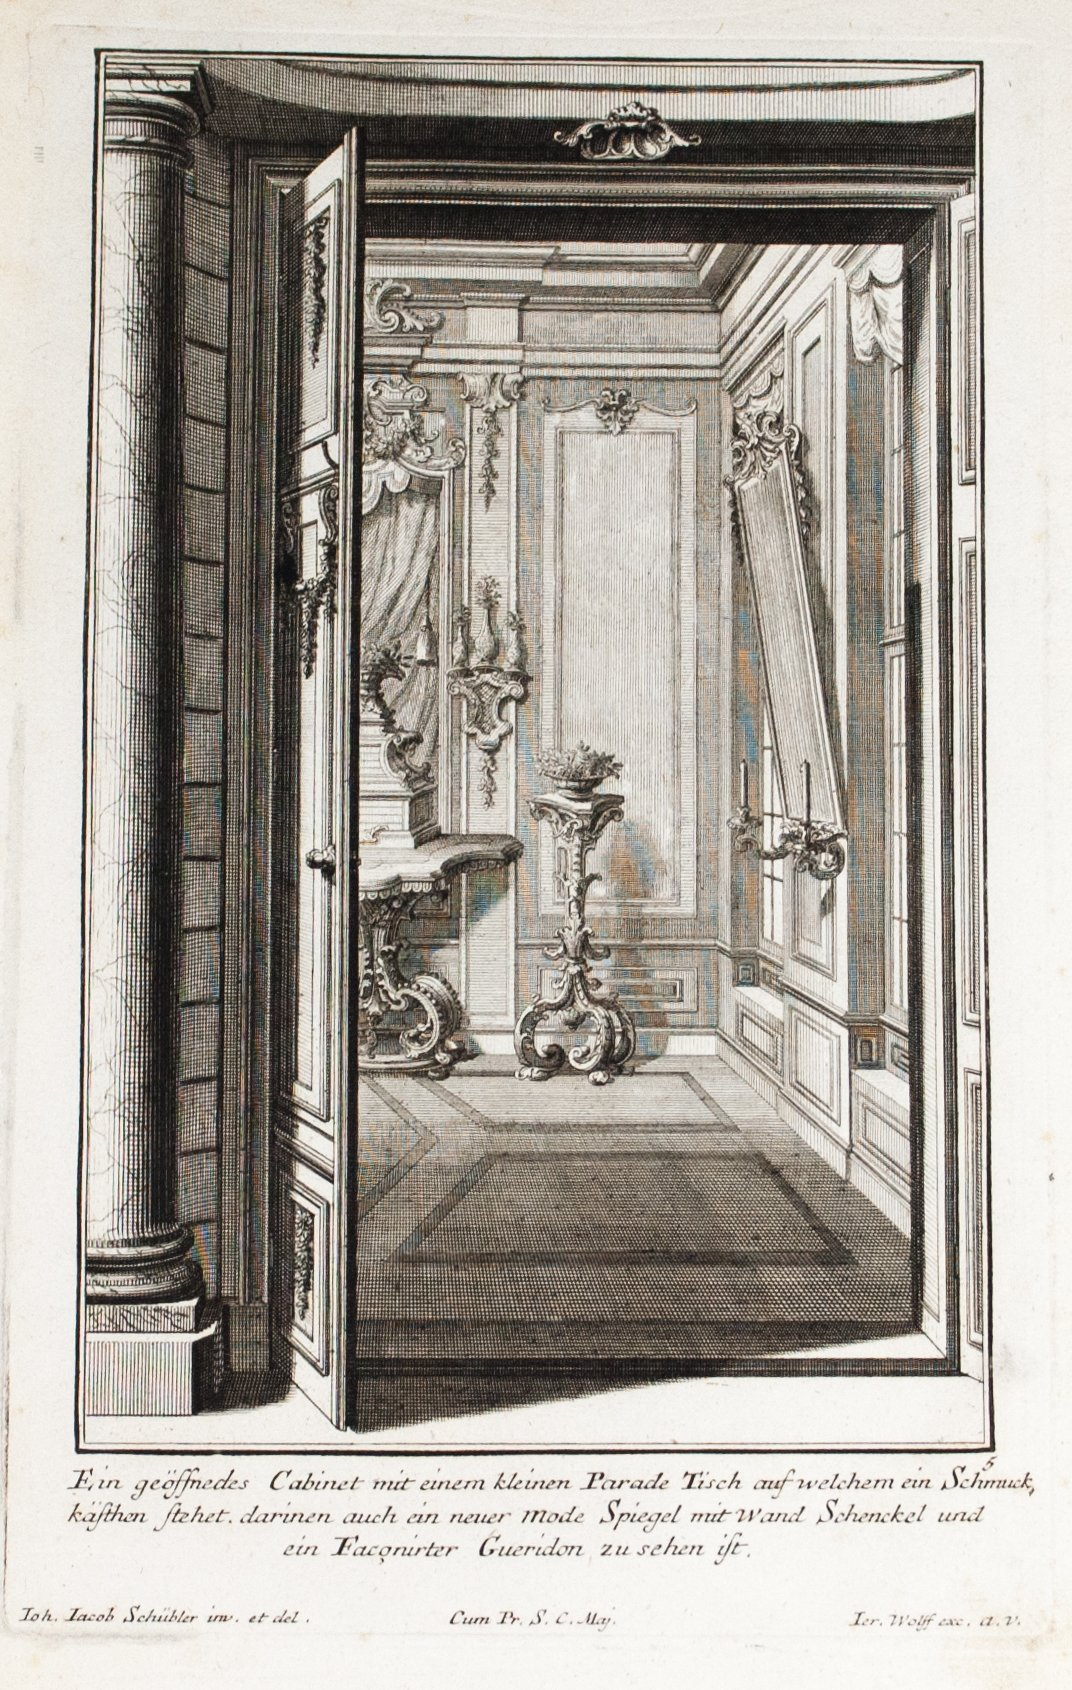 1735 Plate 5 - Cabinet Parade Table and Fashion Mirror - Schublers